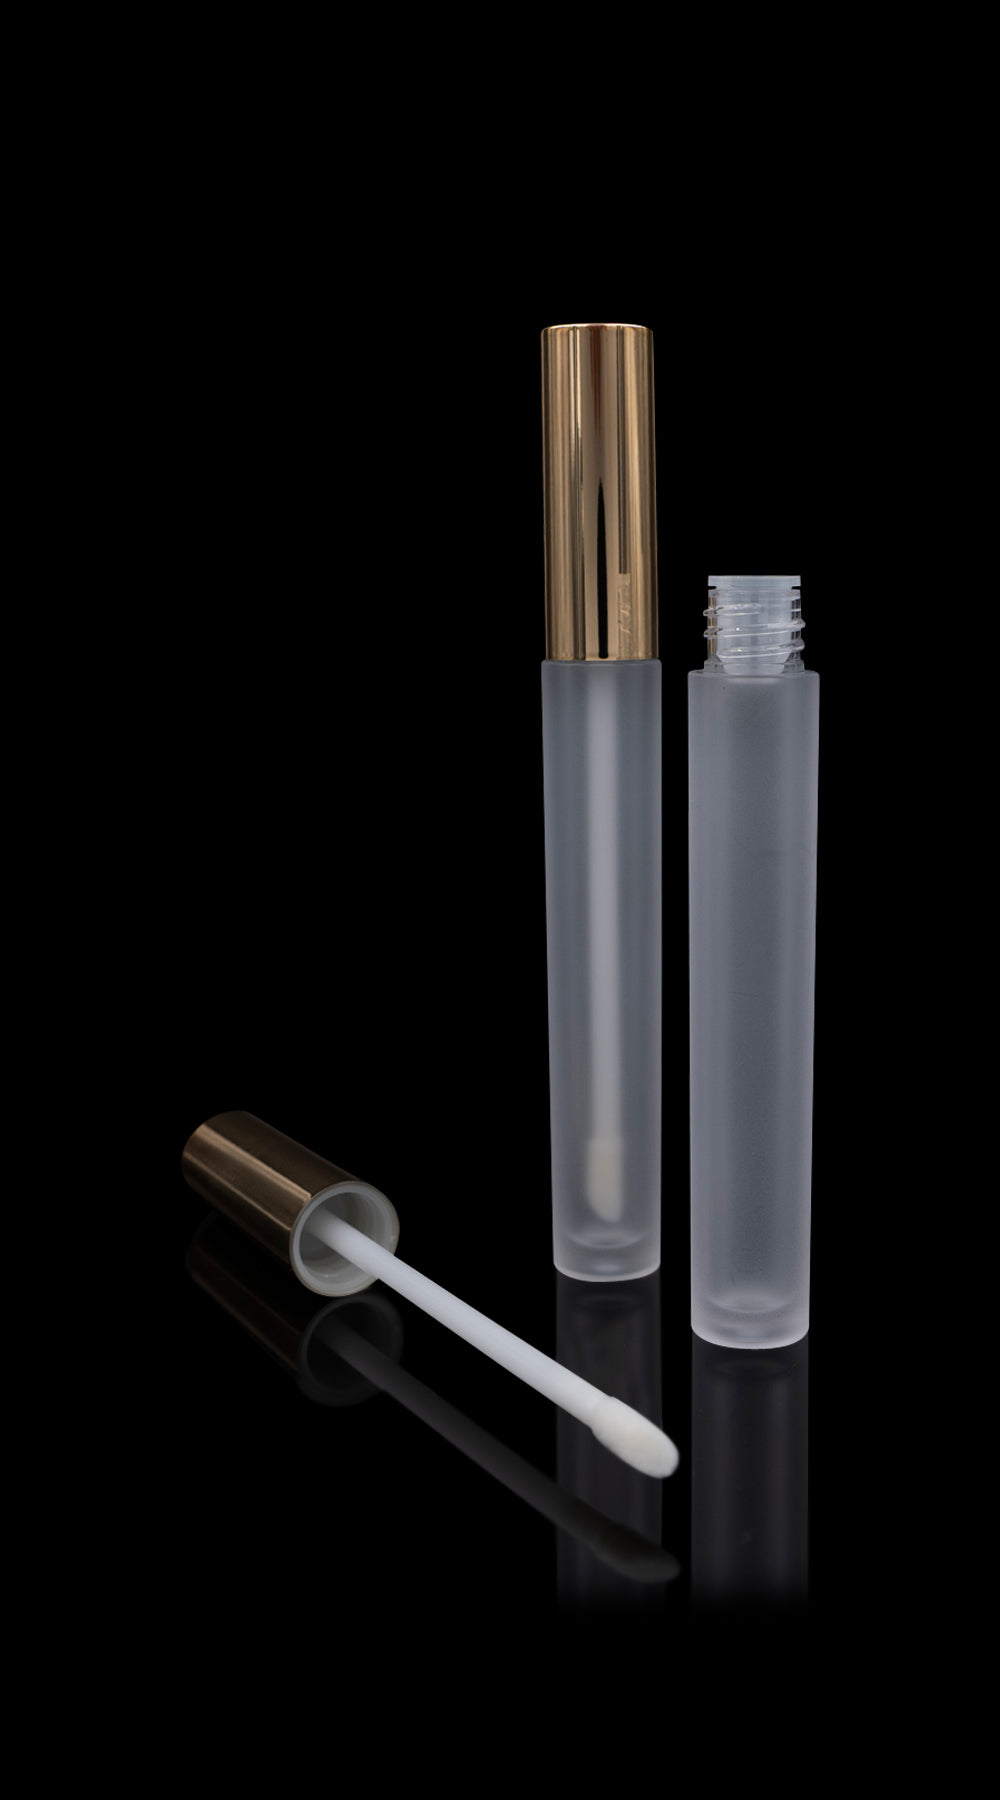 Vibe Lip Gloss Container Shiny Gold Cap with Frosted Bottle - Cosmetic Packaging Now